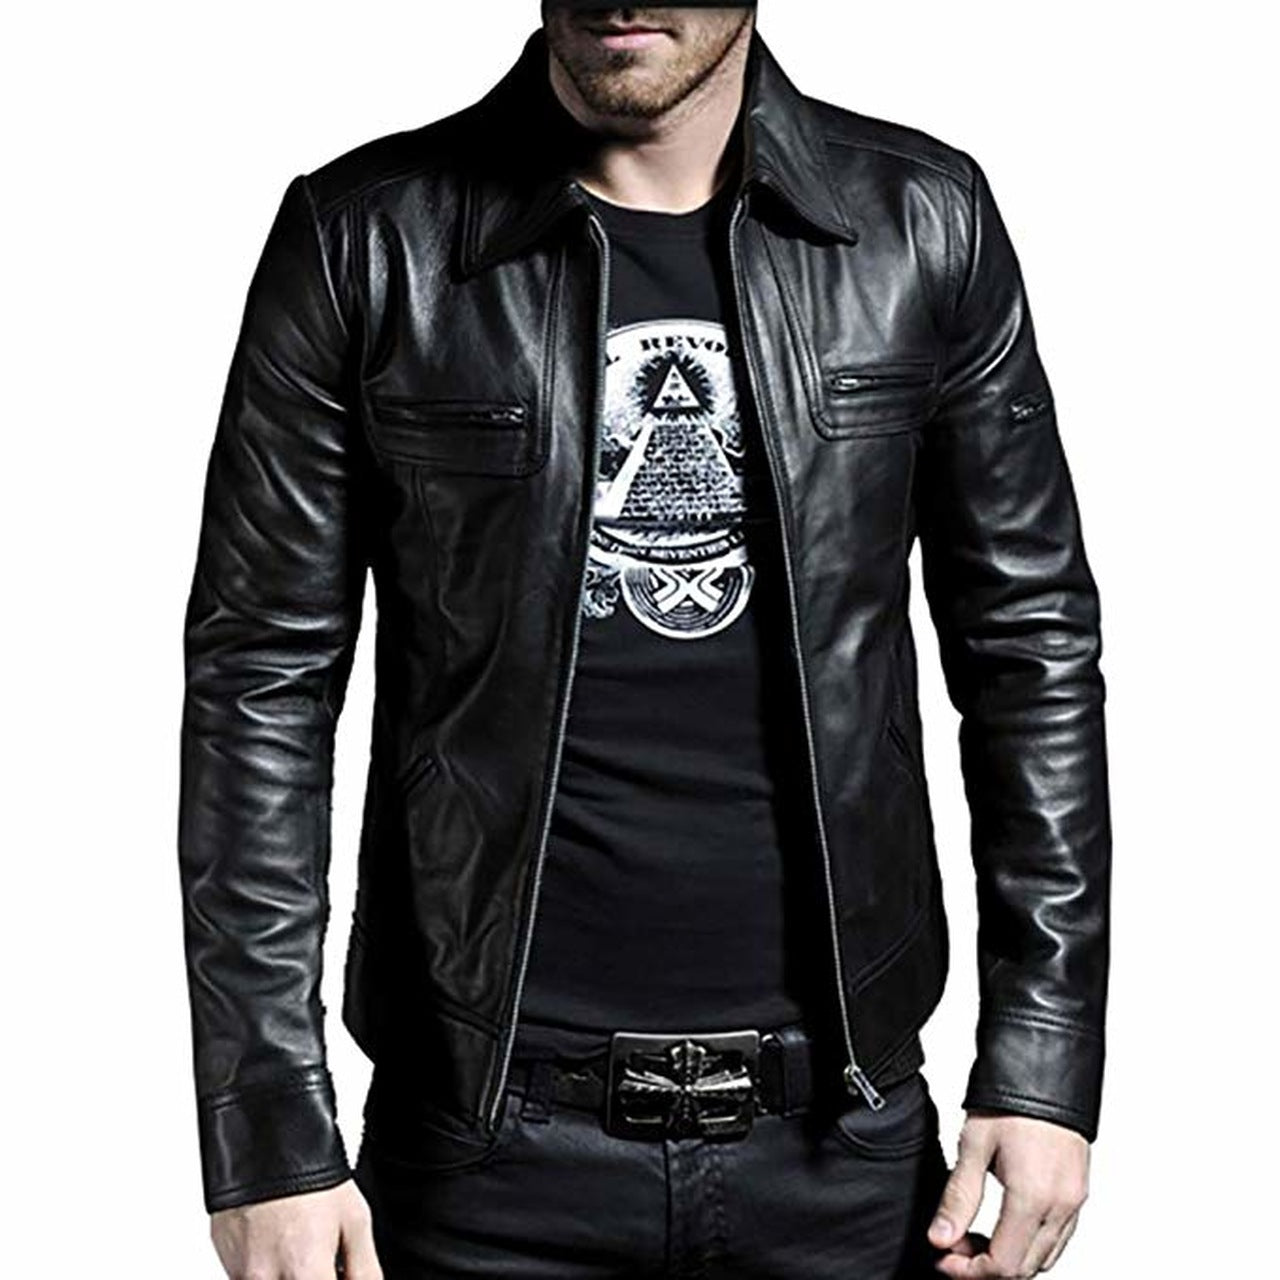 Black Leather Jacket for Men's - Leather Jacket